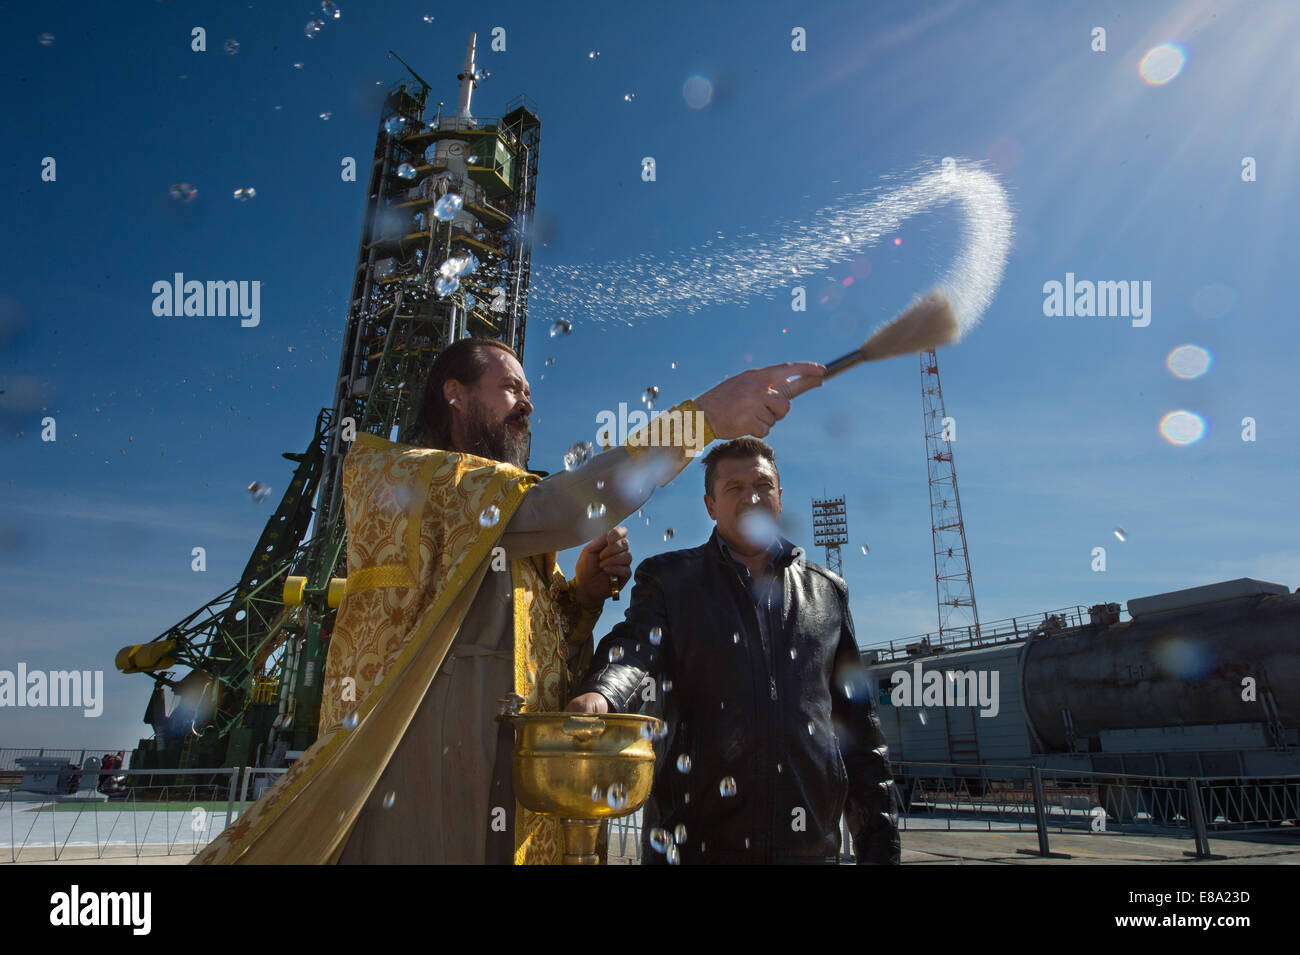 An Orthodox priest blesses members of the media at the Baikonur Cosmodrome launch pad on Wednesday, Sept. 24, 2014, - Stock Image